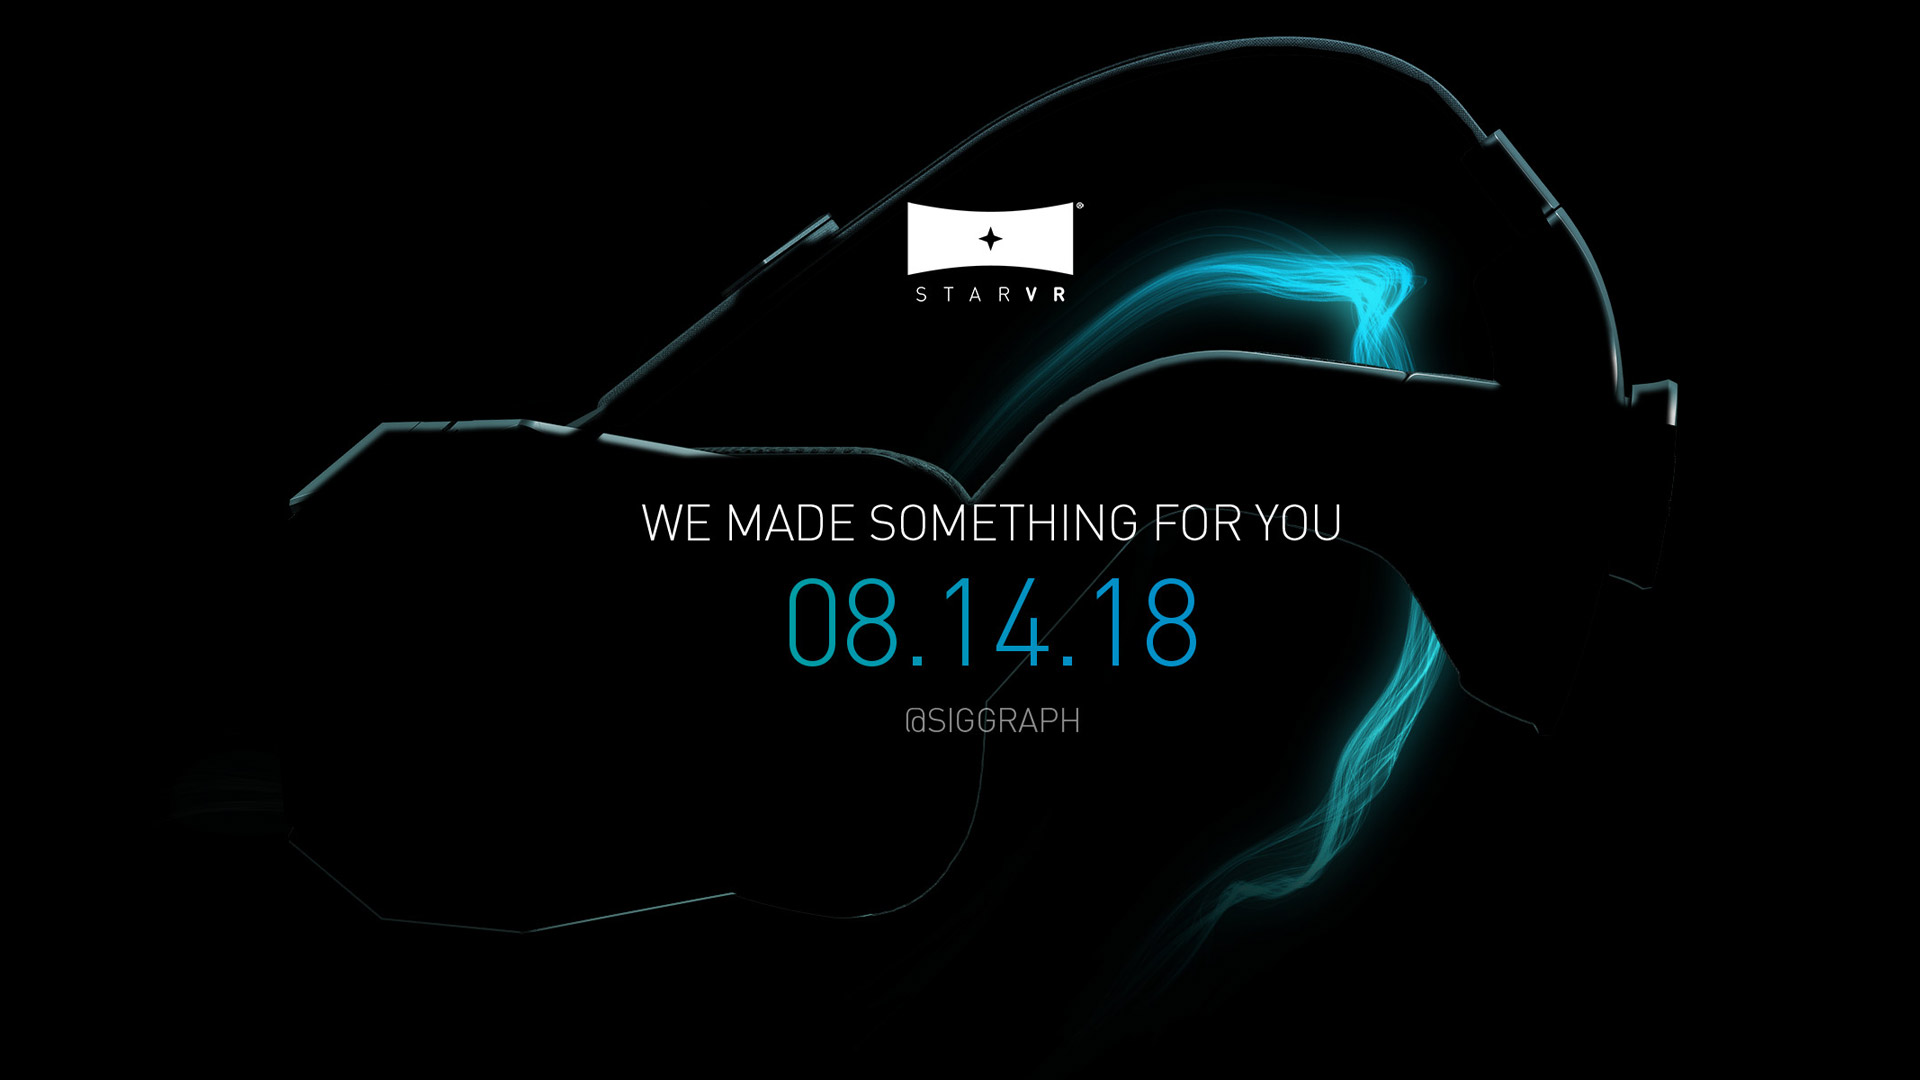 9a1d5b8d037 StarVR Teases New Version of Its High-end VR Headset to be Revealed Next  Week